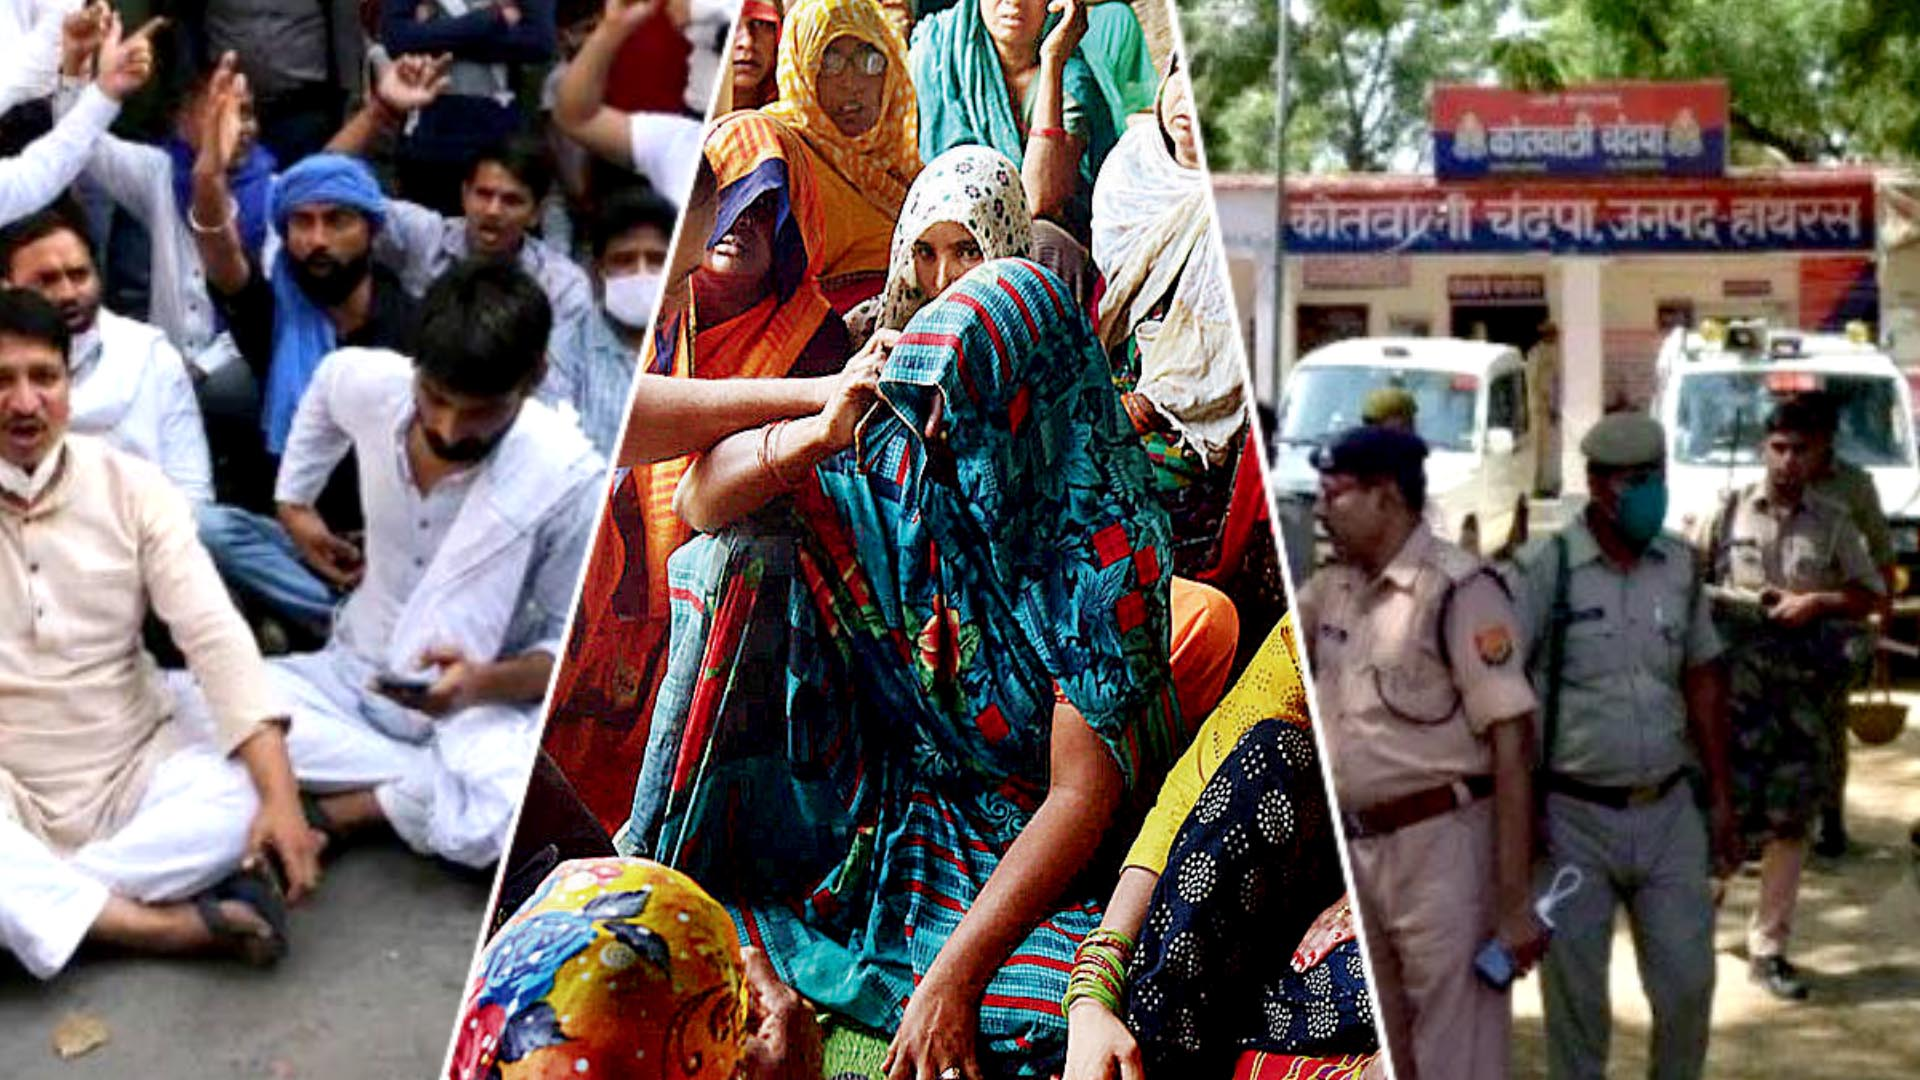 CBI Takes Over the Alleged Hathras Gang Rape Case